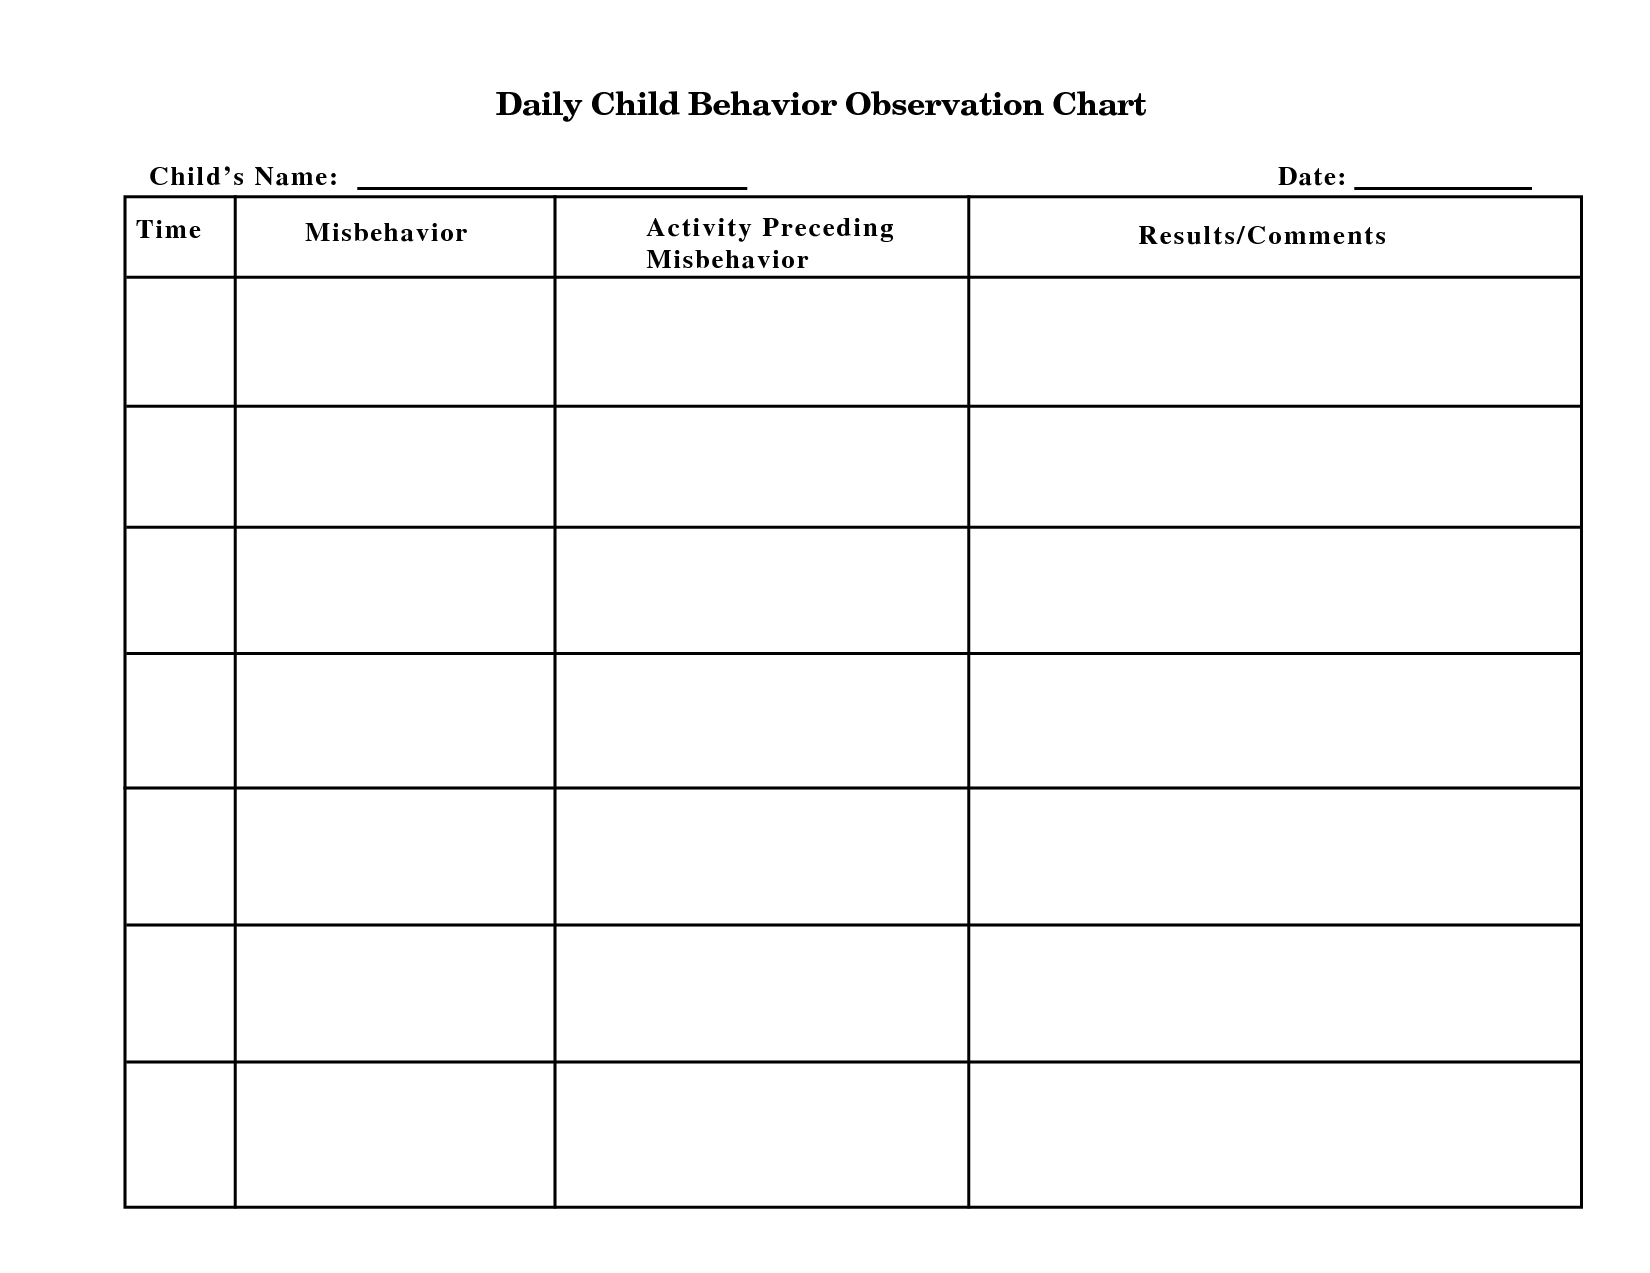 Behavior+Observation+Form+Template | School idea\'s in 2018 ...